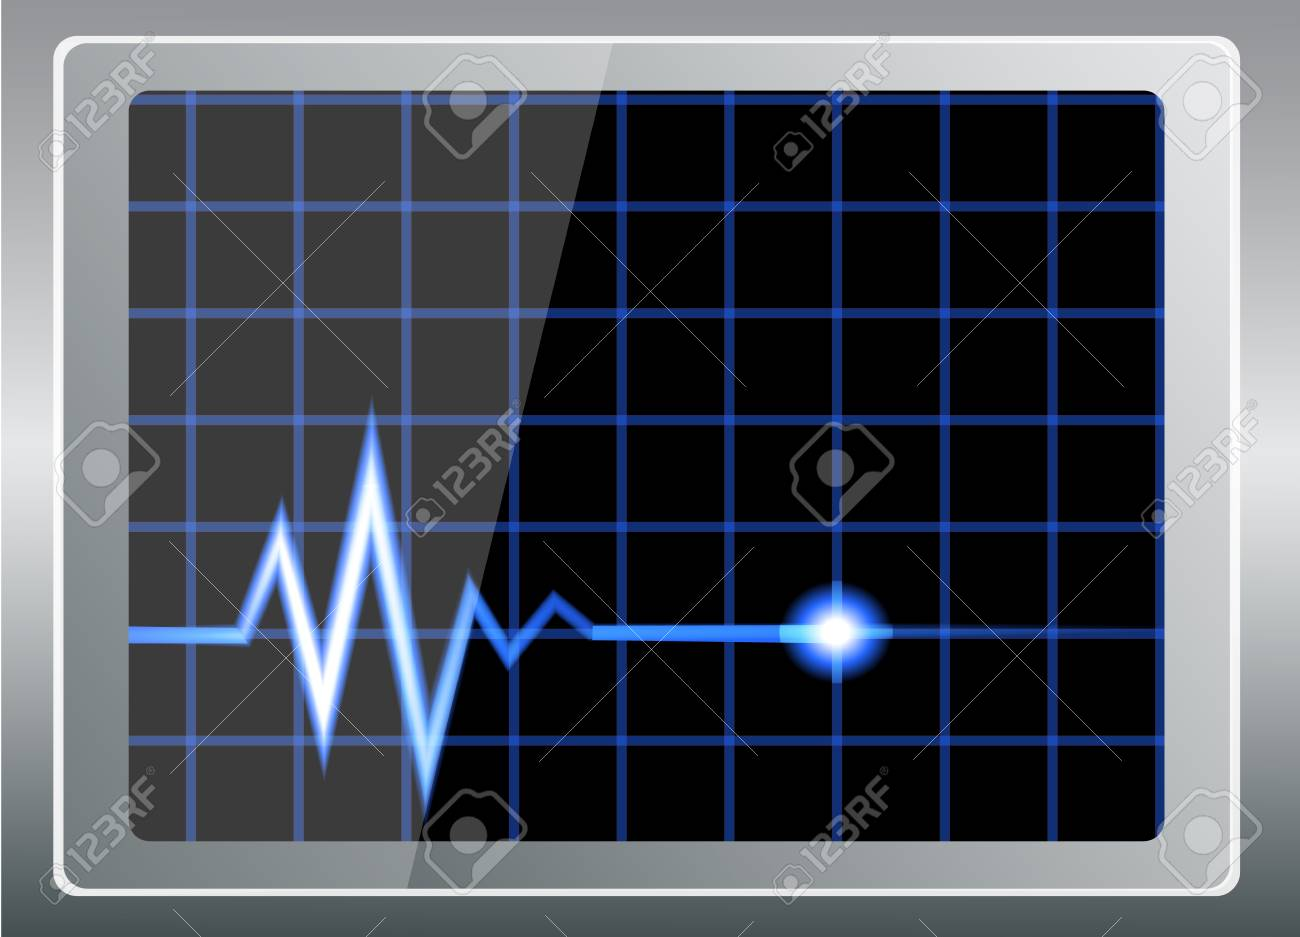 vector illustration-cardiogram on the shiny screen Stock Vector - 21644825